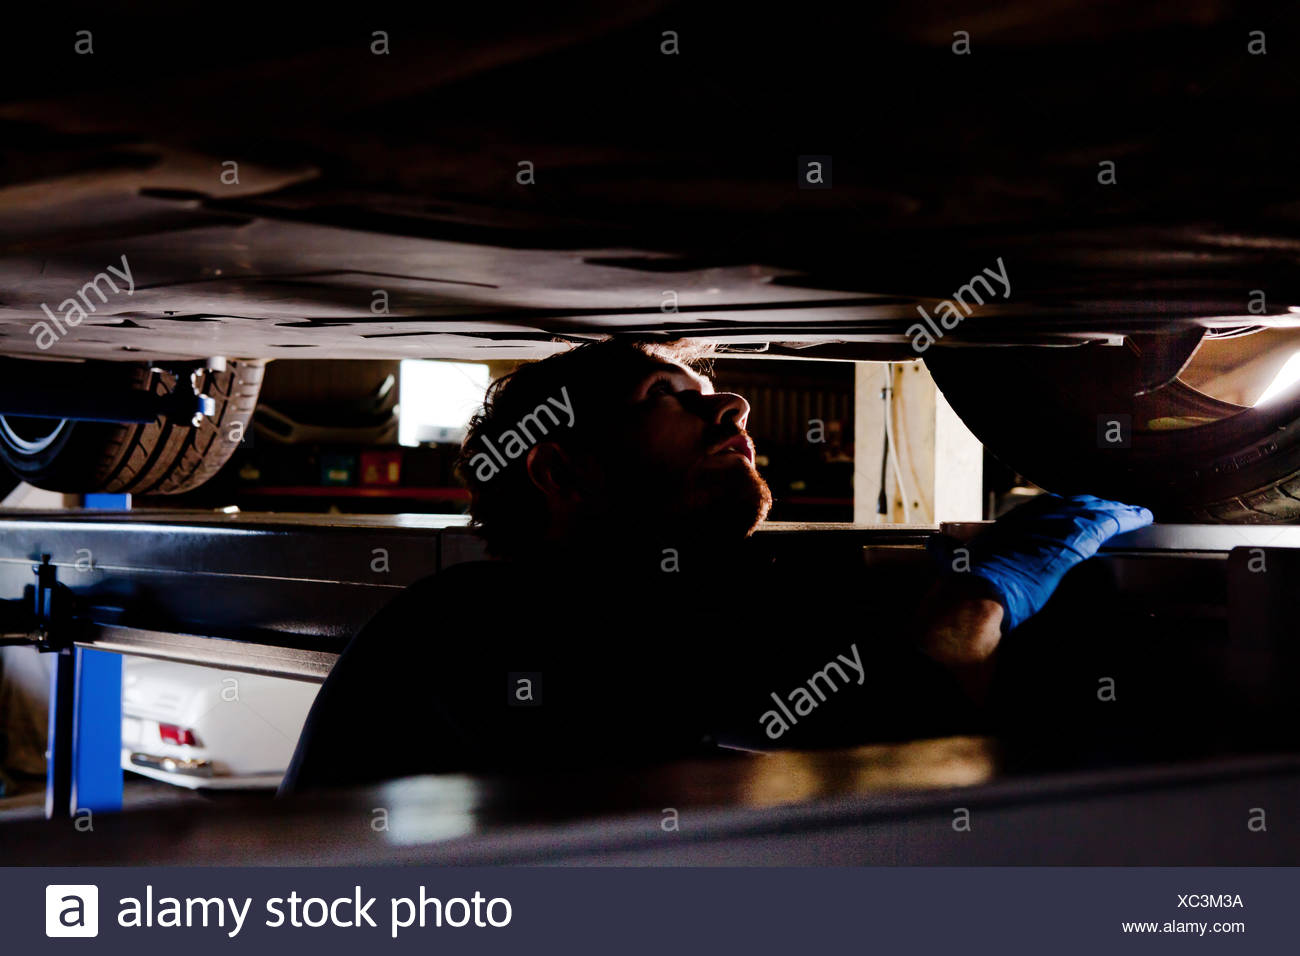 Male mechanic underneath car, looking for problem - Stock Image